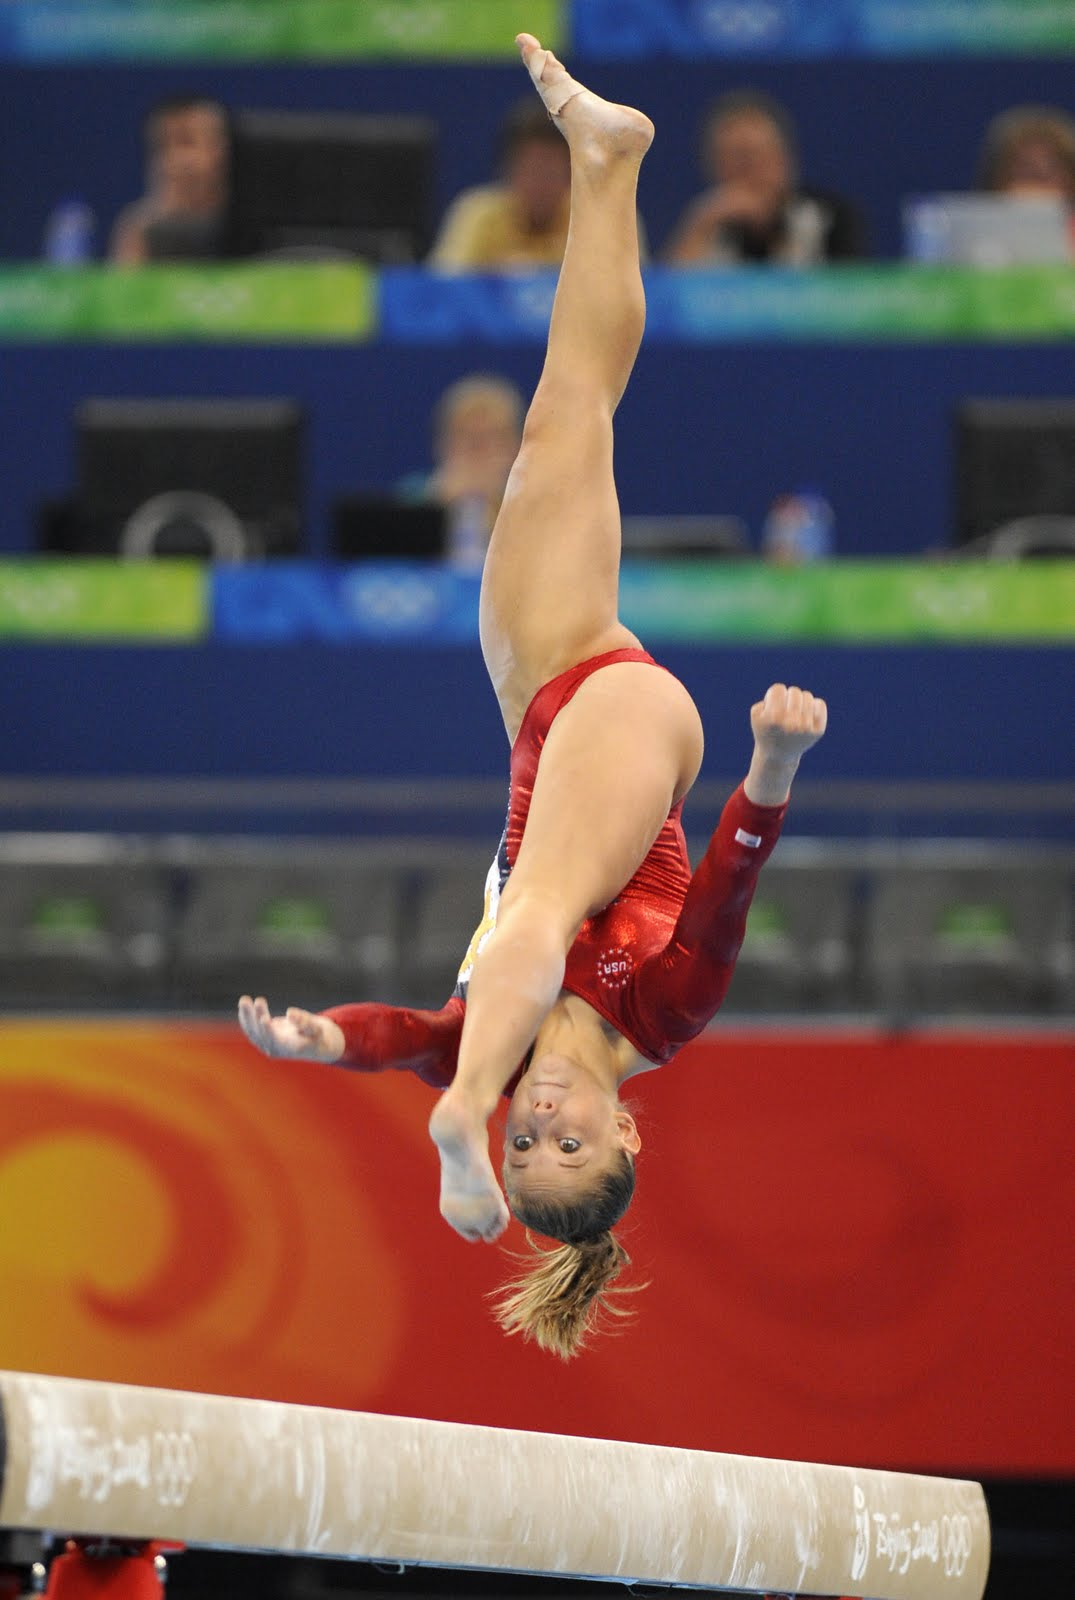 Shawn Johnson Oops http://justhot.blogspot.com/2011/11/shawn-johnson-various-pics.html